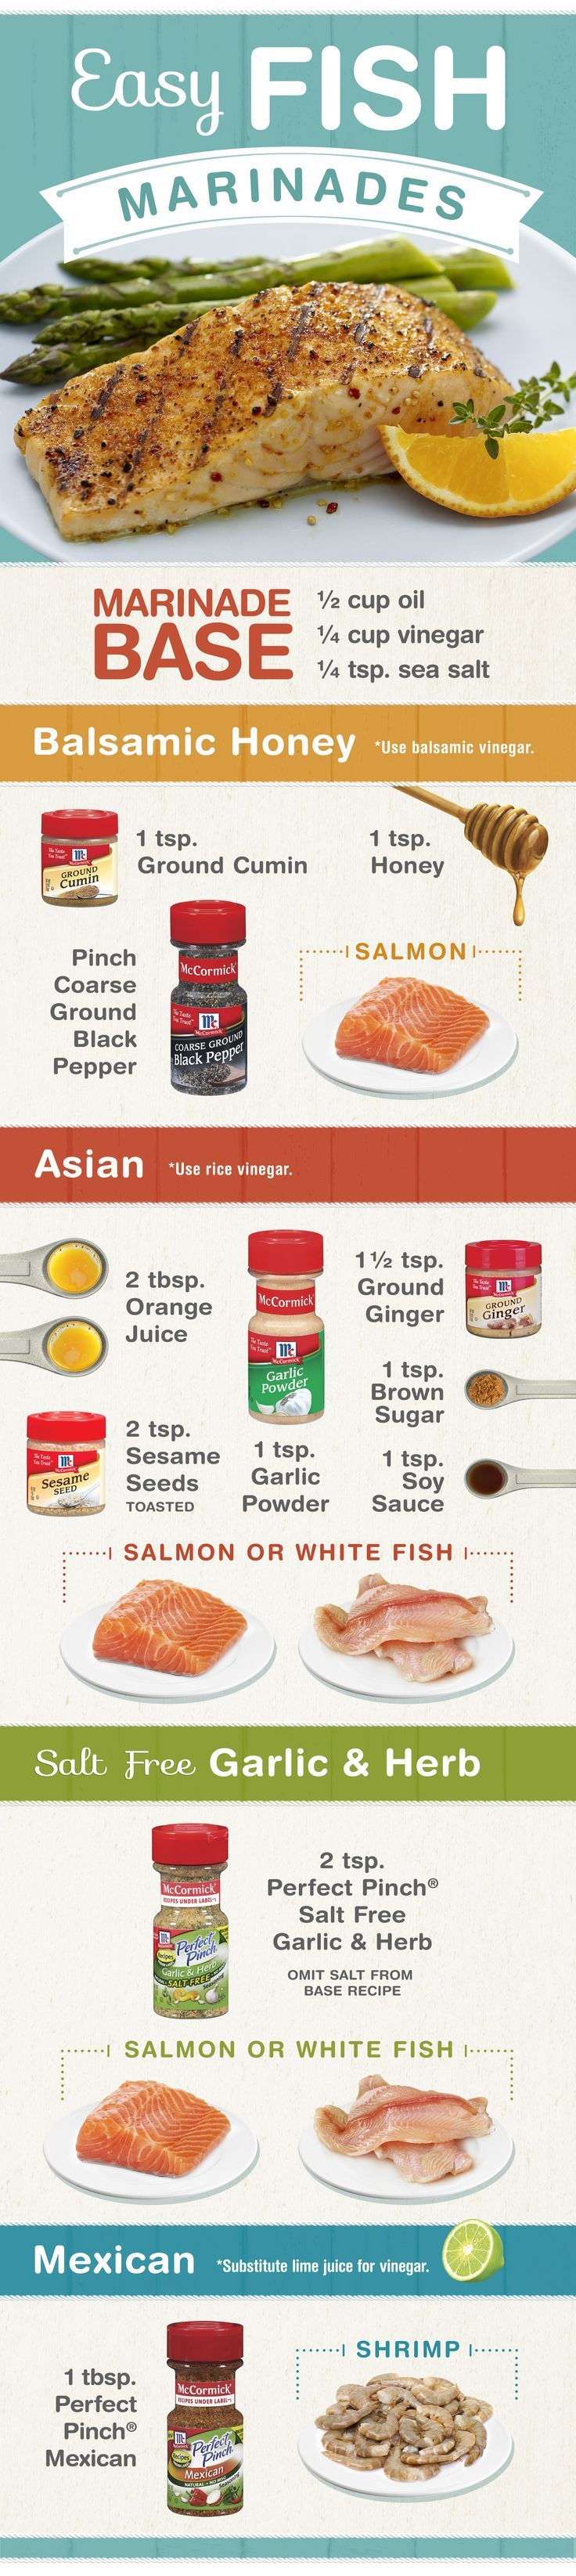 Need a little inspiration during Lent? Make an easy DIY fish marinade with some olive oil, vinegar and spices & herbs.